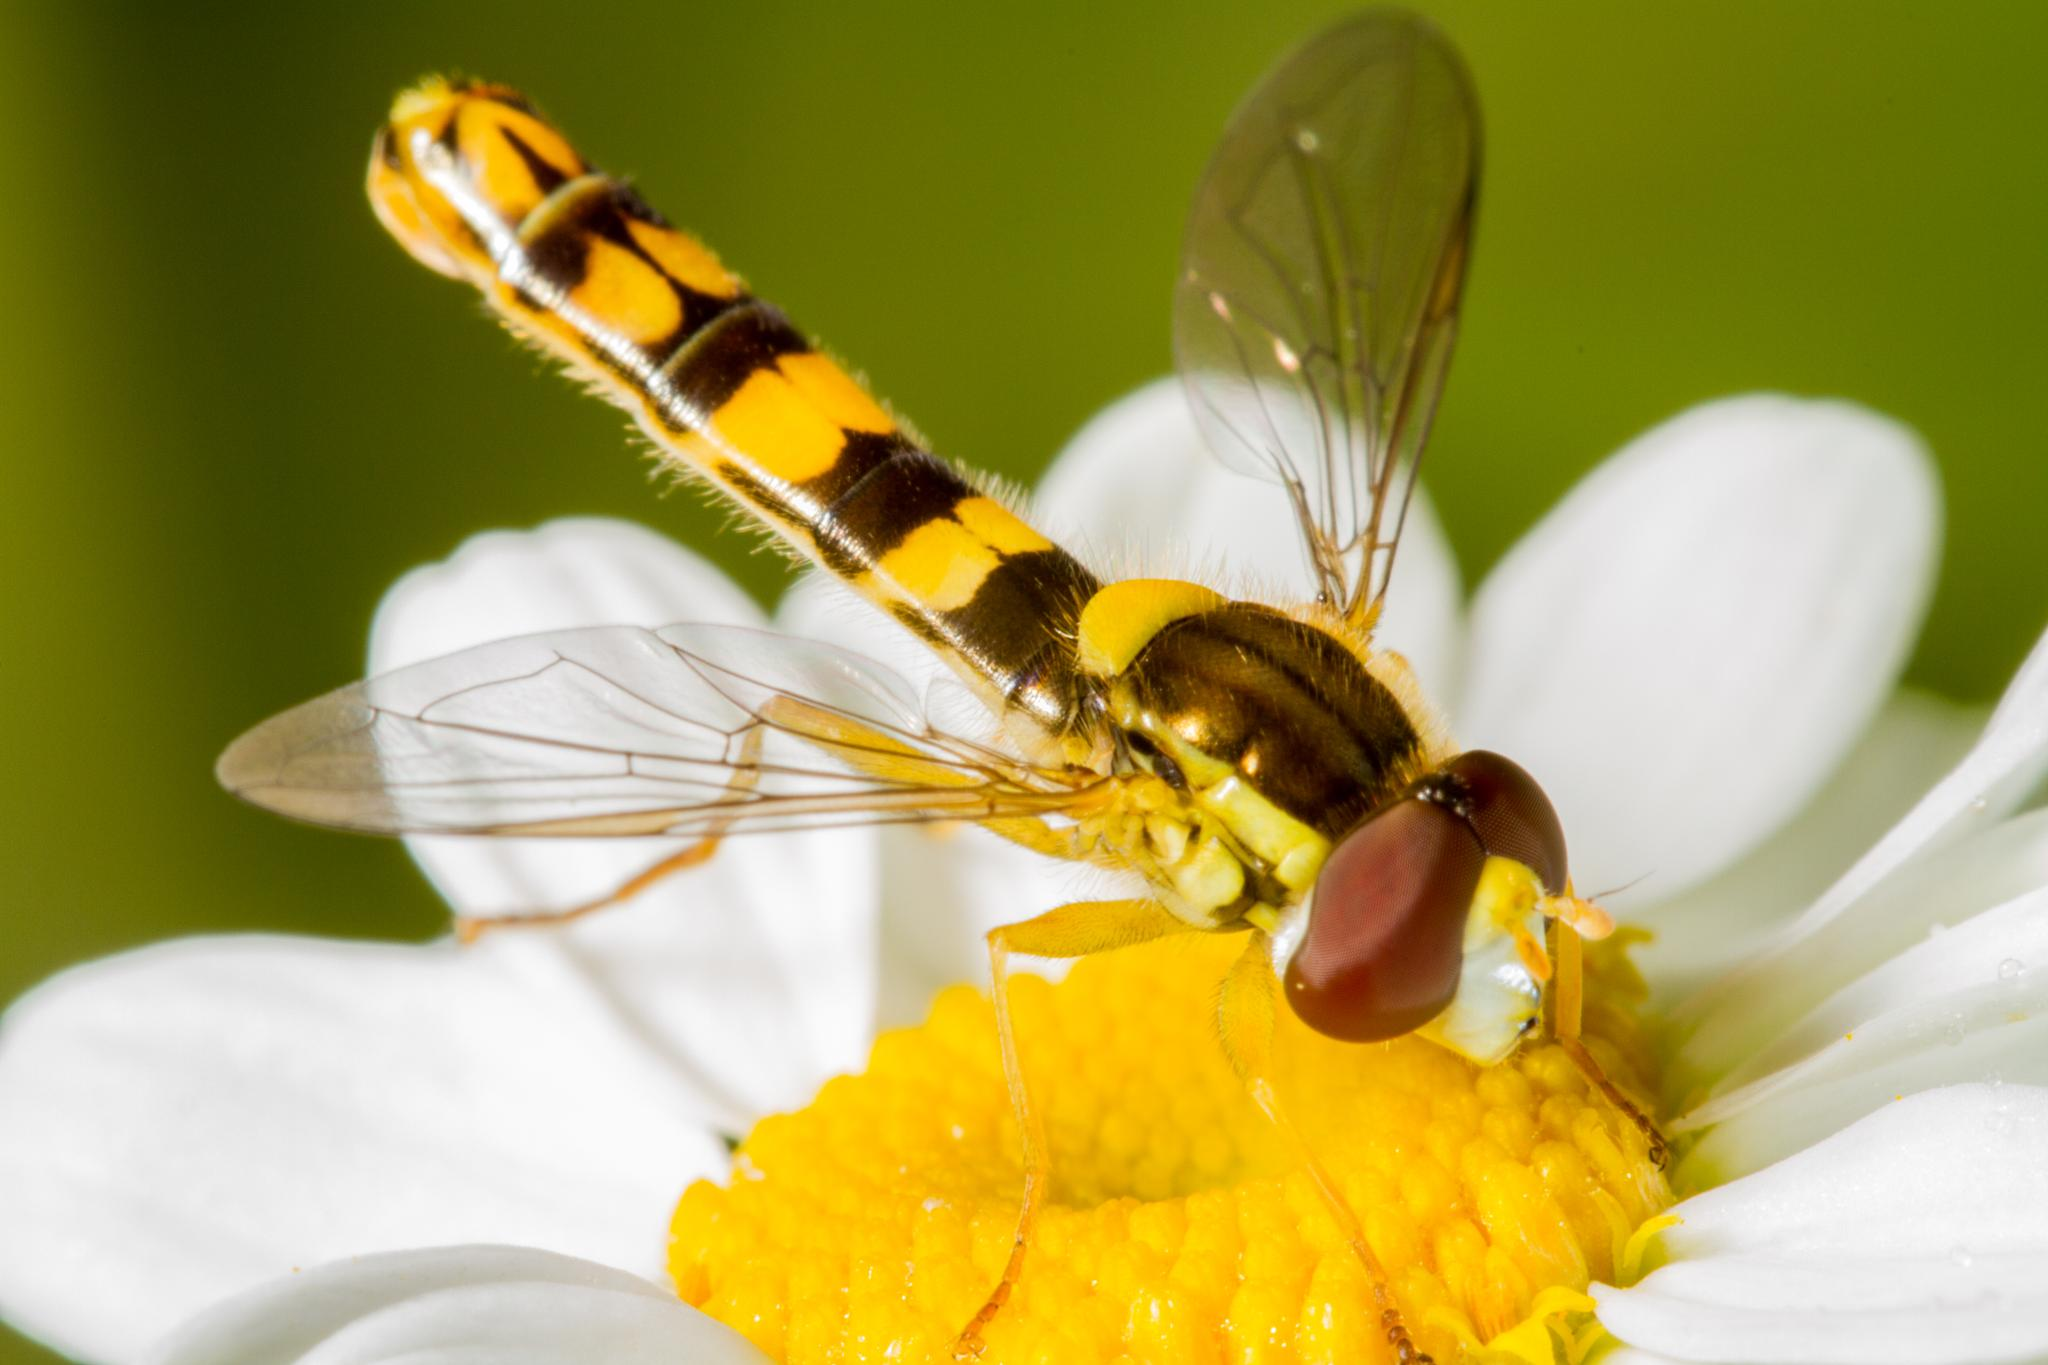 Hoverfly by David Arnold